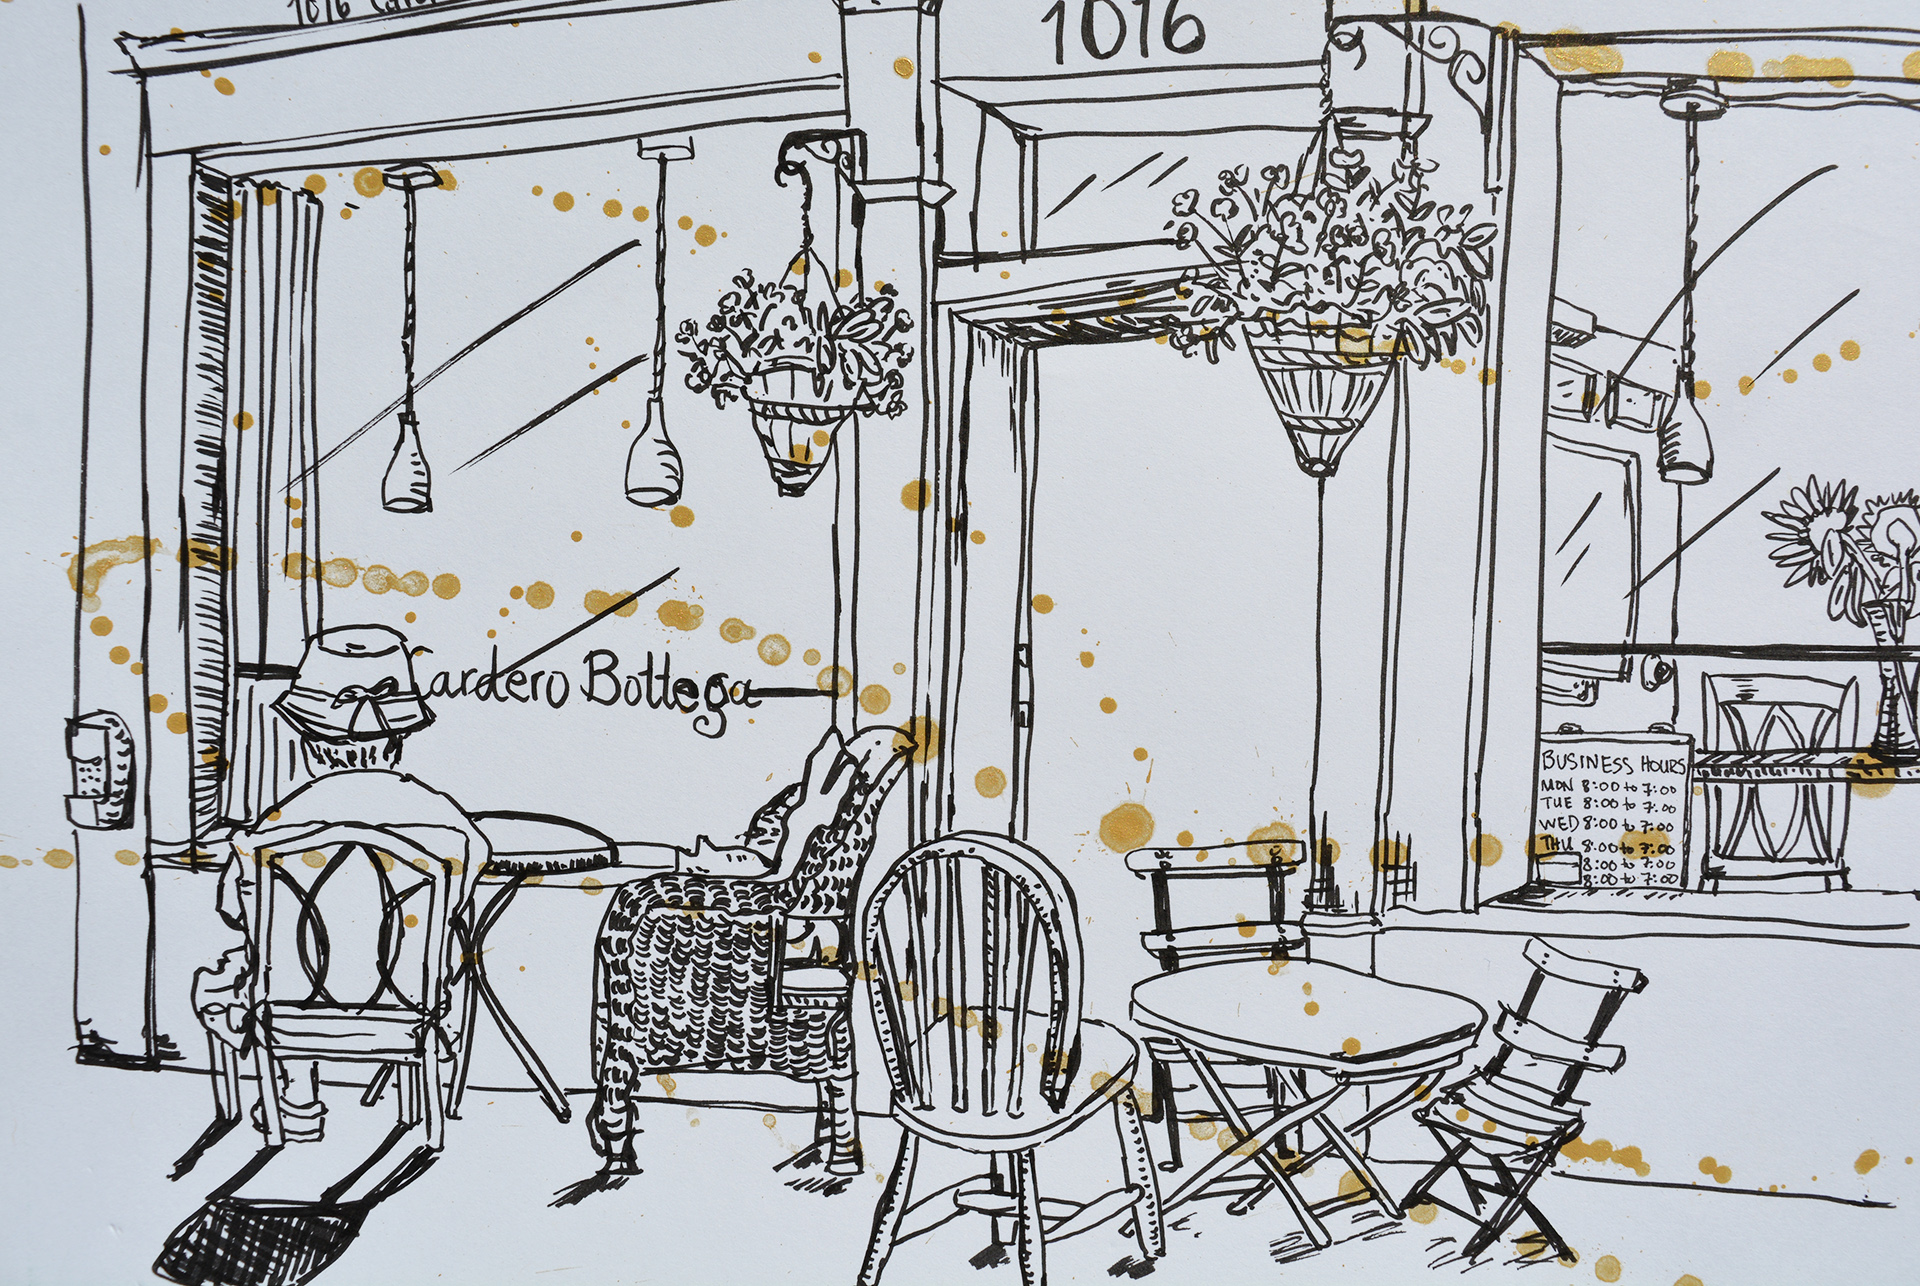 Cafe Bottega, a local cafe in Vancouver's West End neighbourhood. Pitt Fine Tip in Black; Pentel watercolour in Gold.